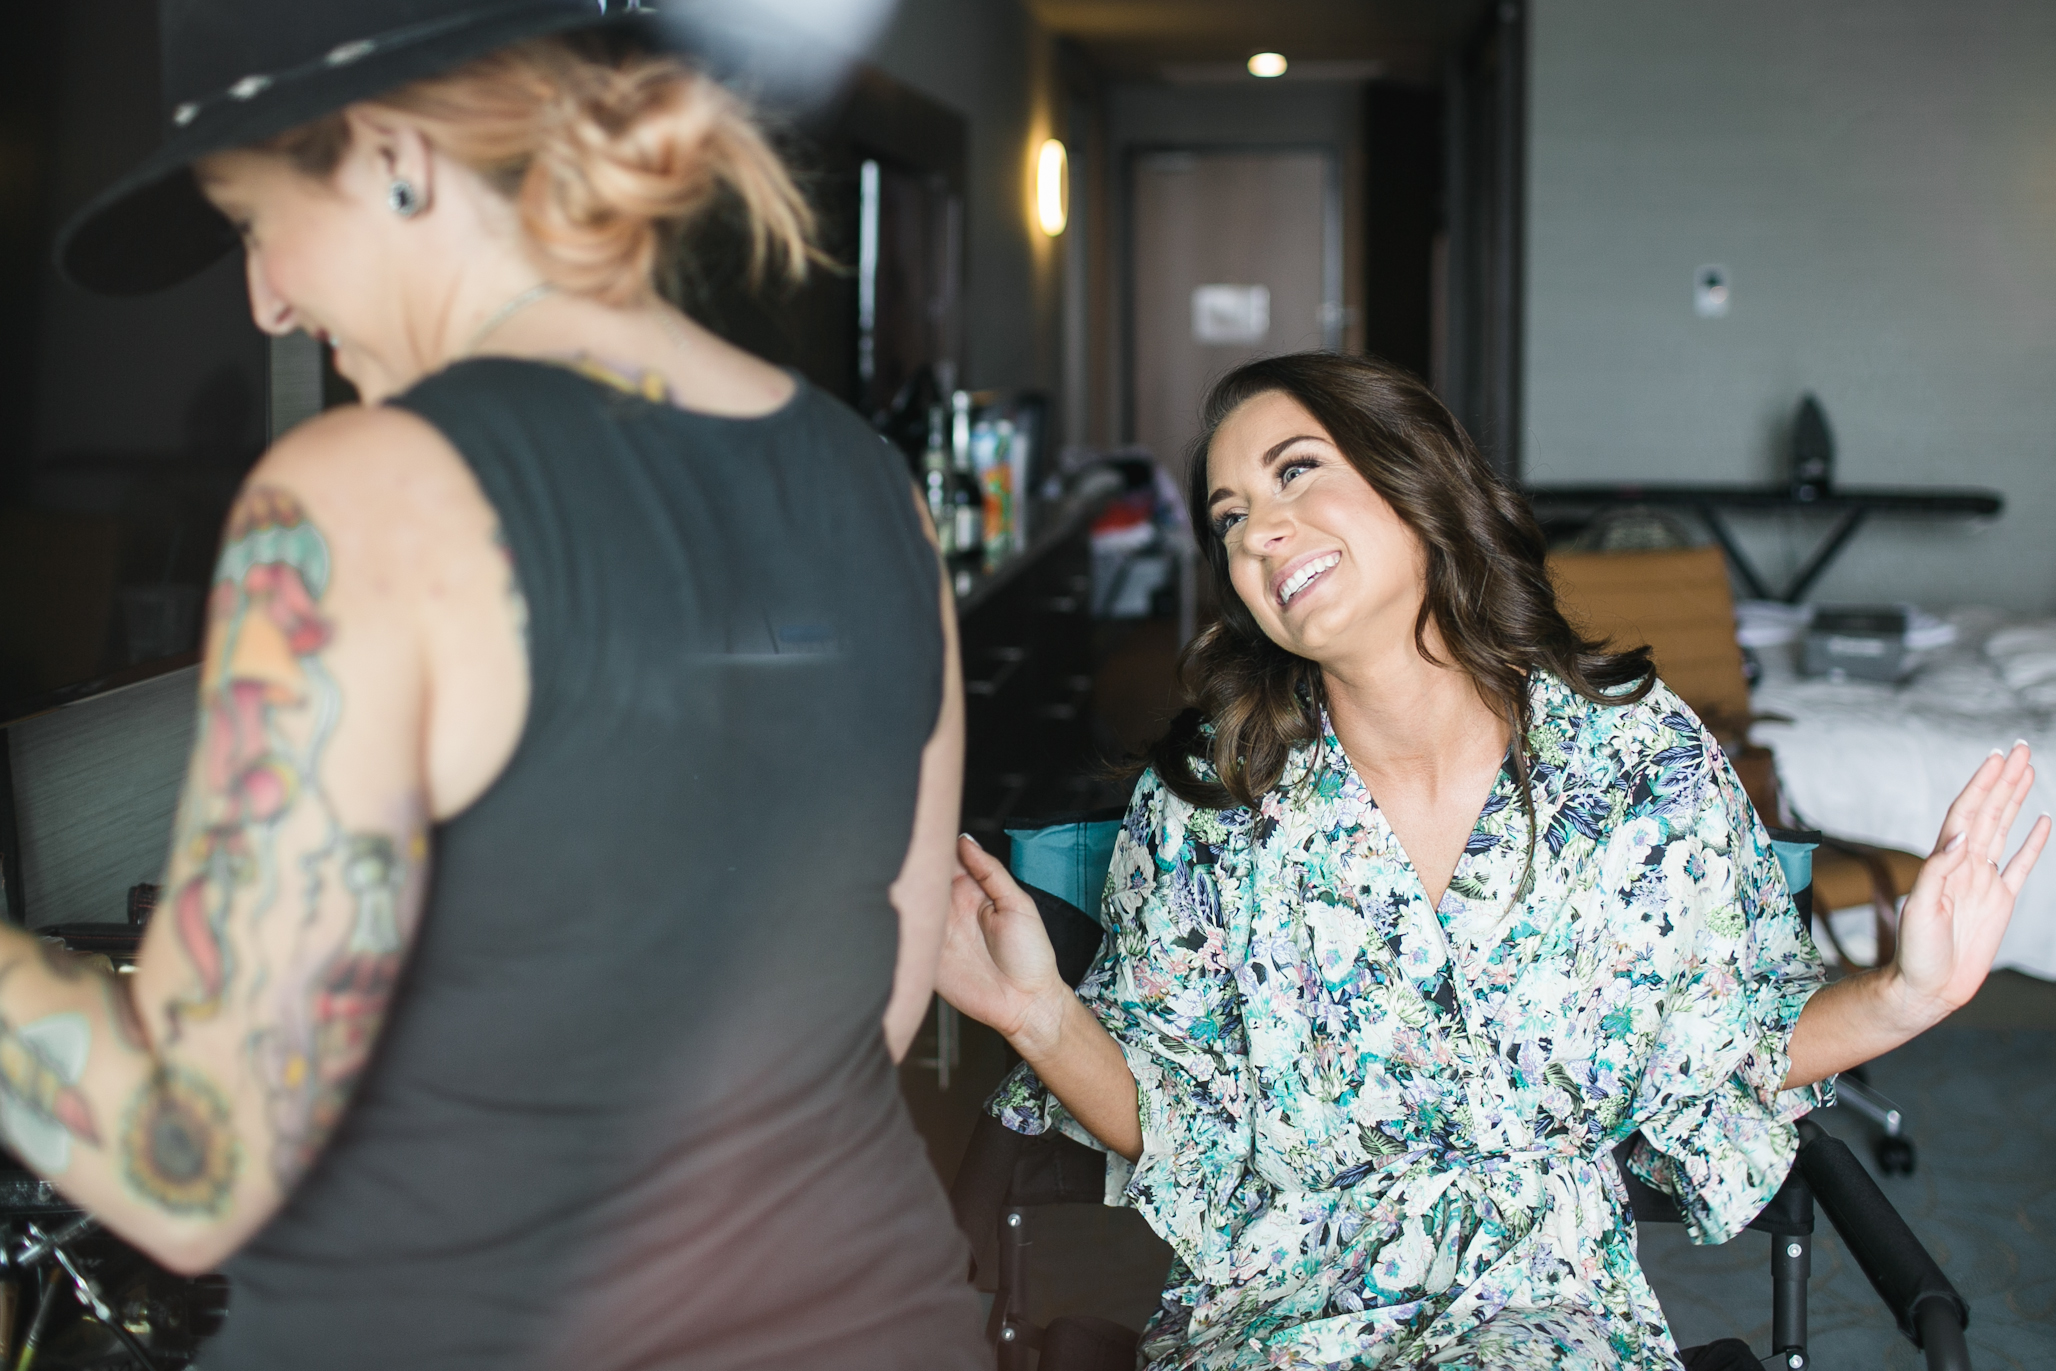 Jessica getting her make-up done by the talented Dana of Cheek to Cheek Make-up.